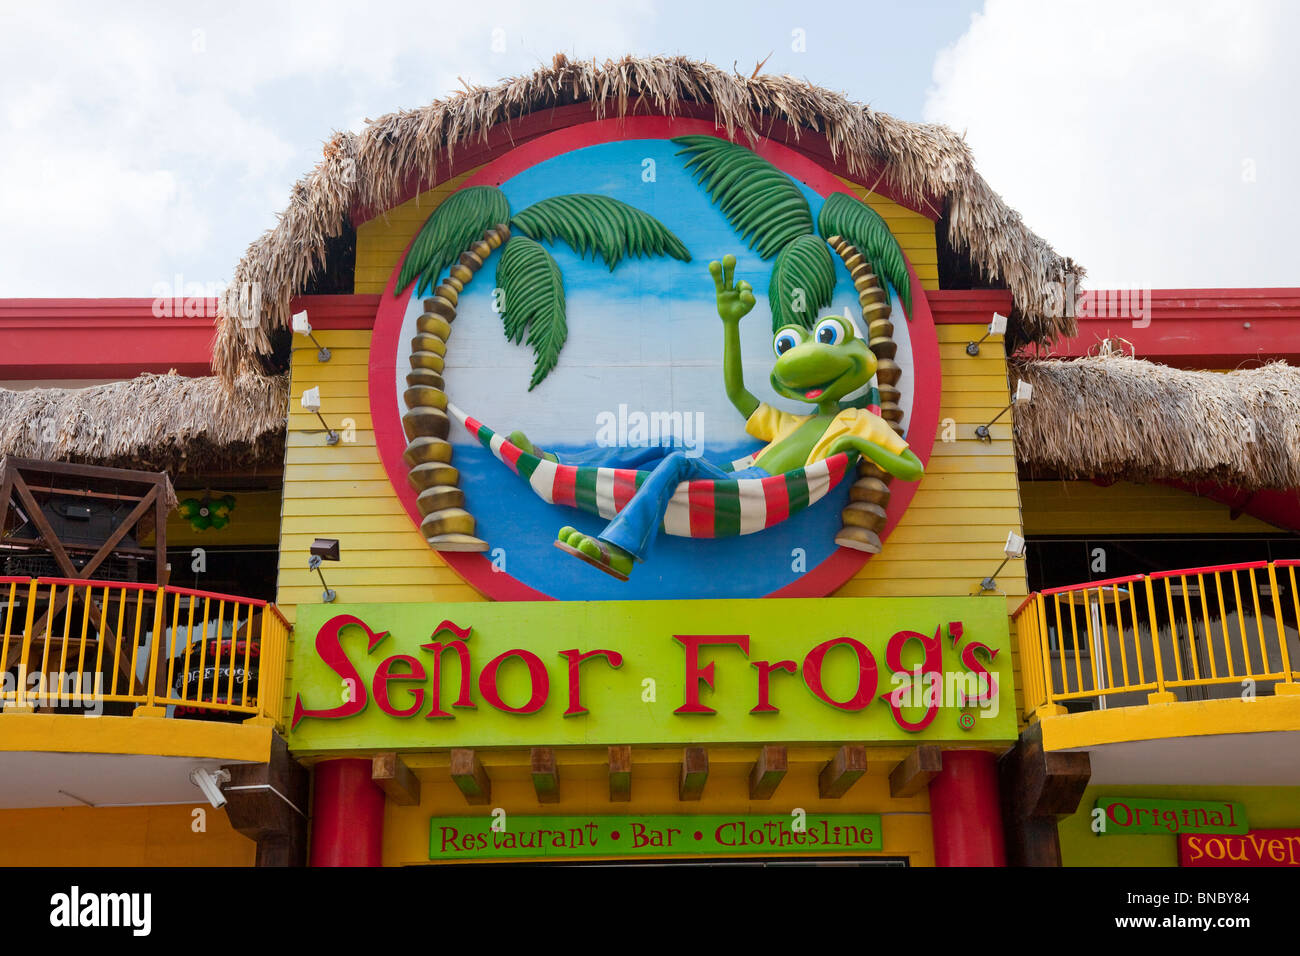 The famous Senor Frogs restaurant and pub in Oranjestad, Aruba, Netherlands Antilles. - Stock Image